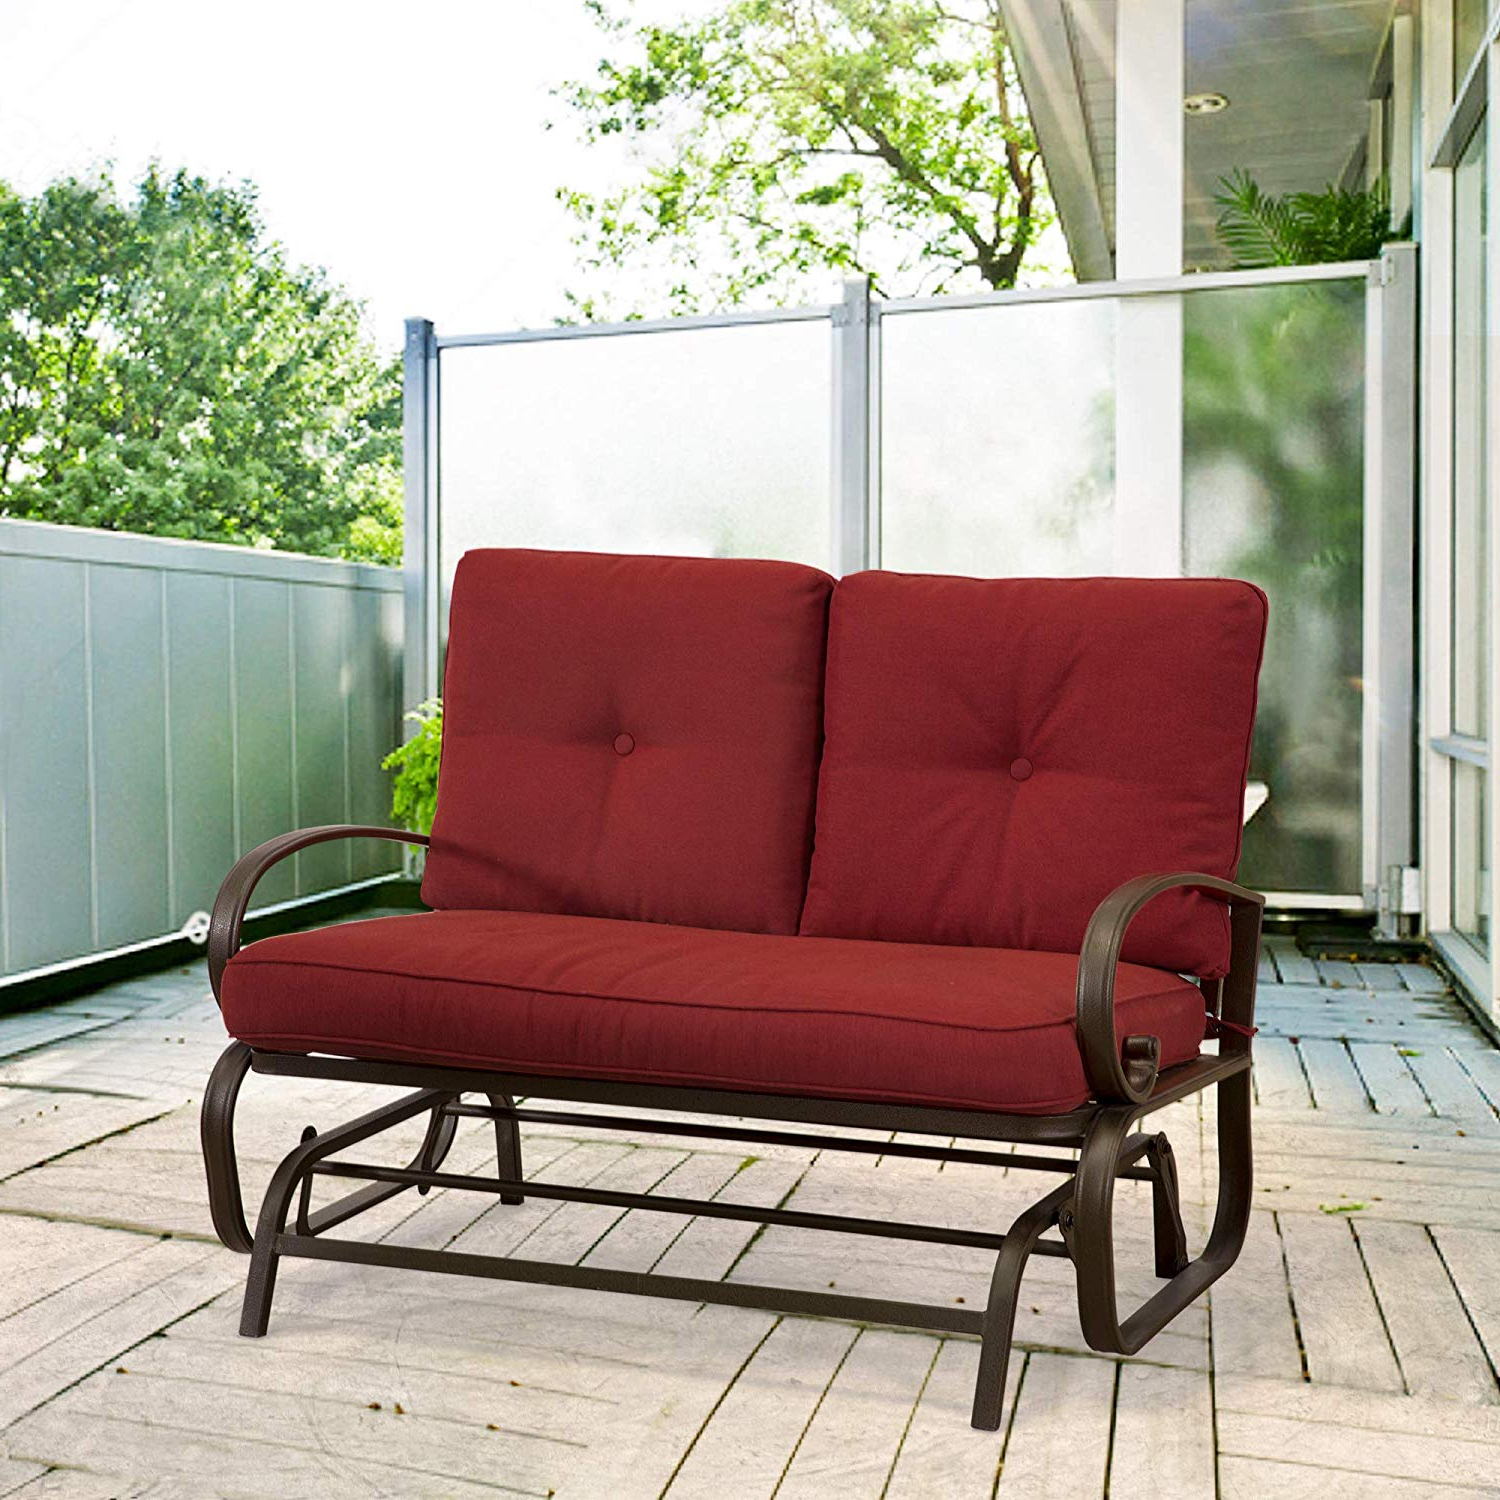 Homevibes Outdoor Glider Porch Glider Patio Bench Loveseat Furniture Rocker Wrought Iron Outside Chair Swing 2 Seats Lounge Cushions, Brick Red Regarding Well Liked Outdoor Loveseat Gliders With Cushion (View 17 of 30)